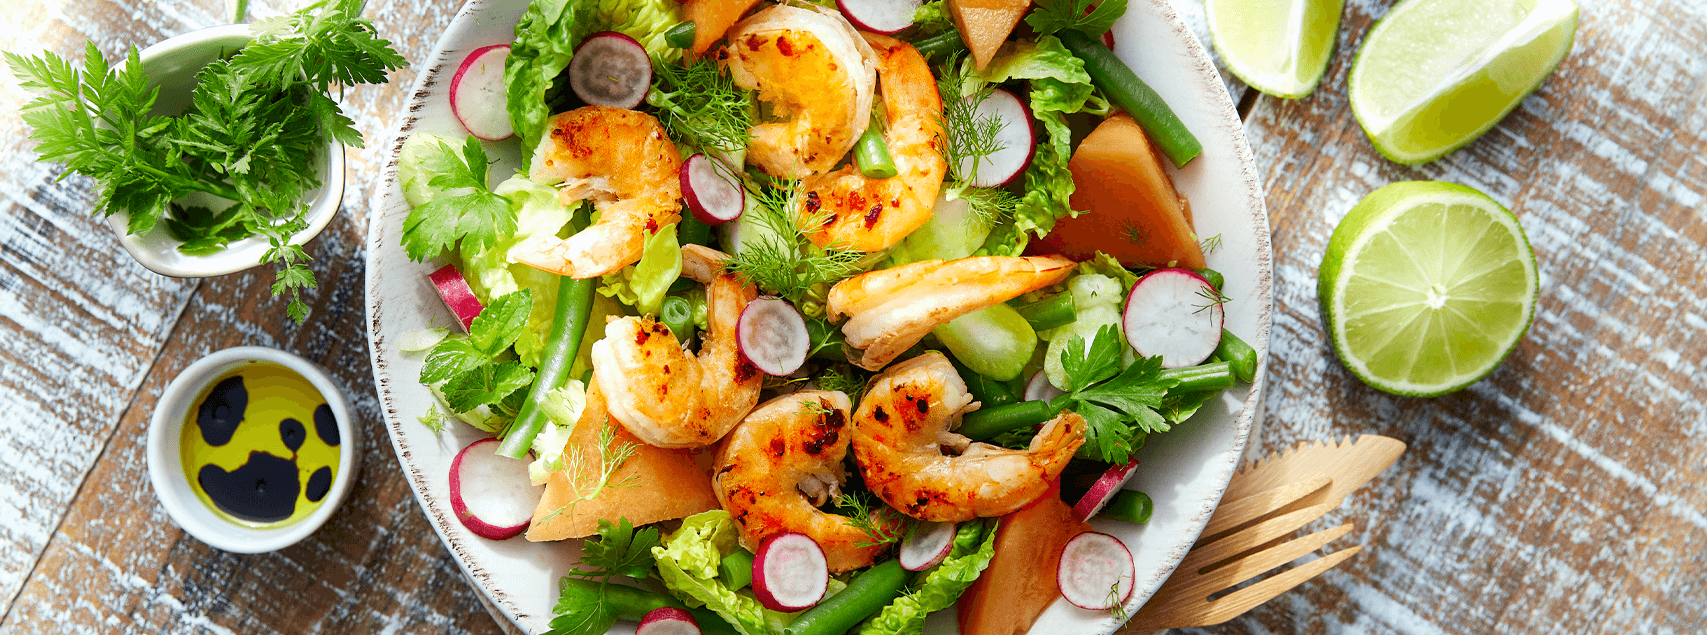 Sommerlicher King Prawns-Salat